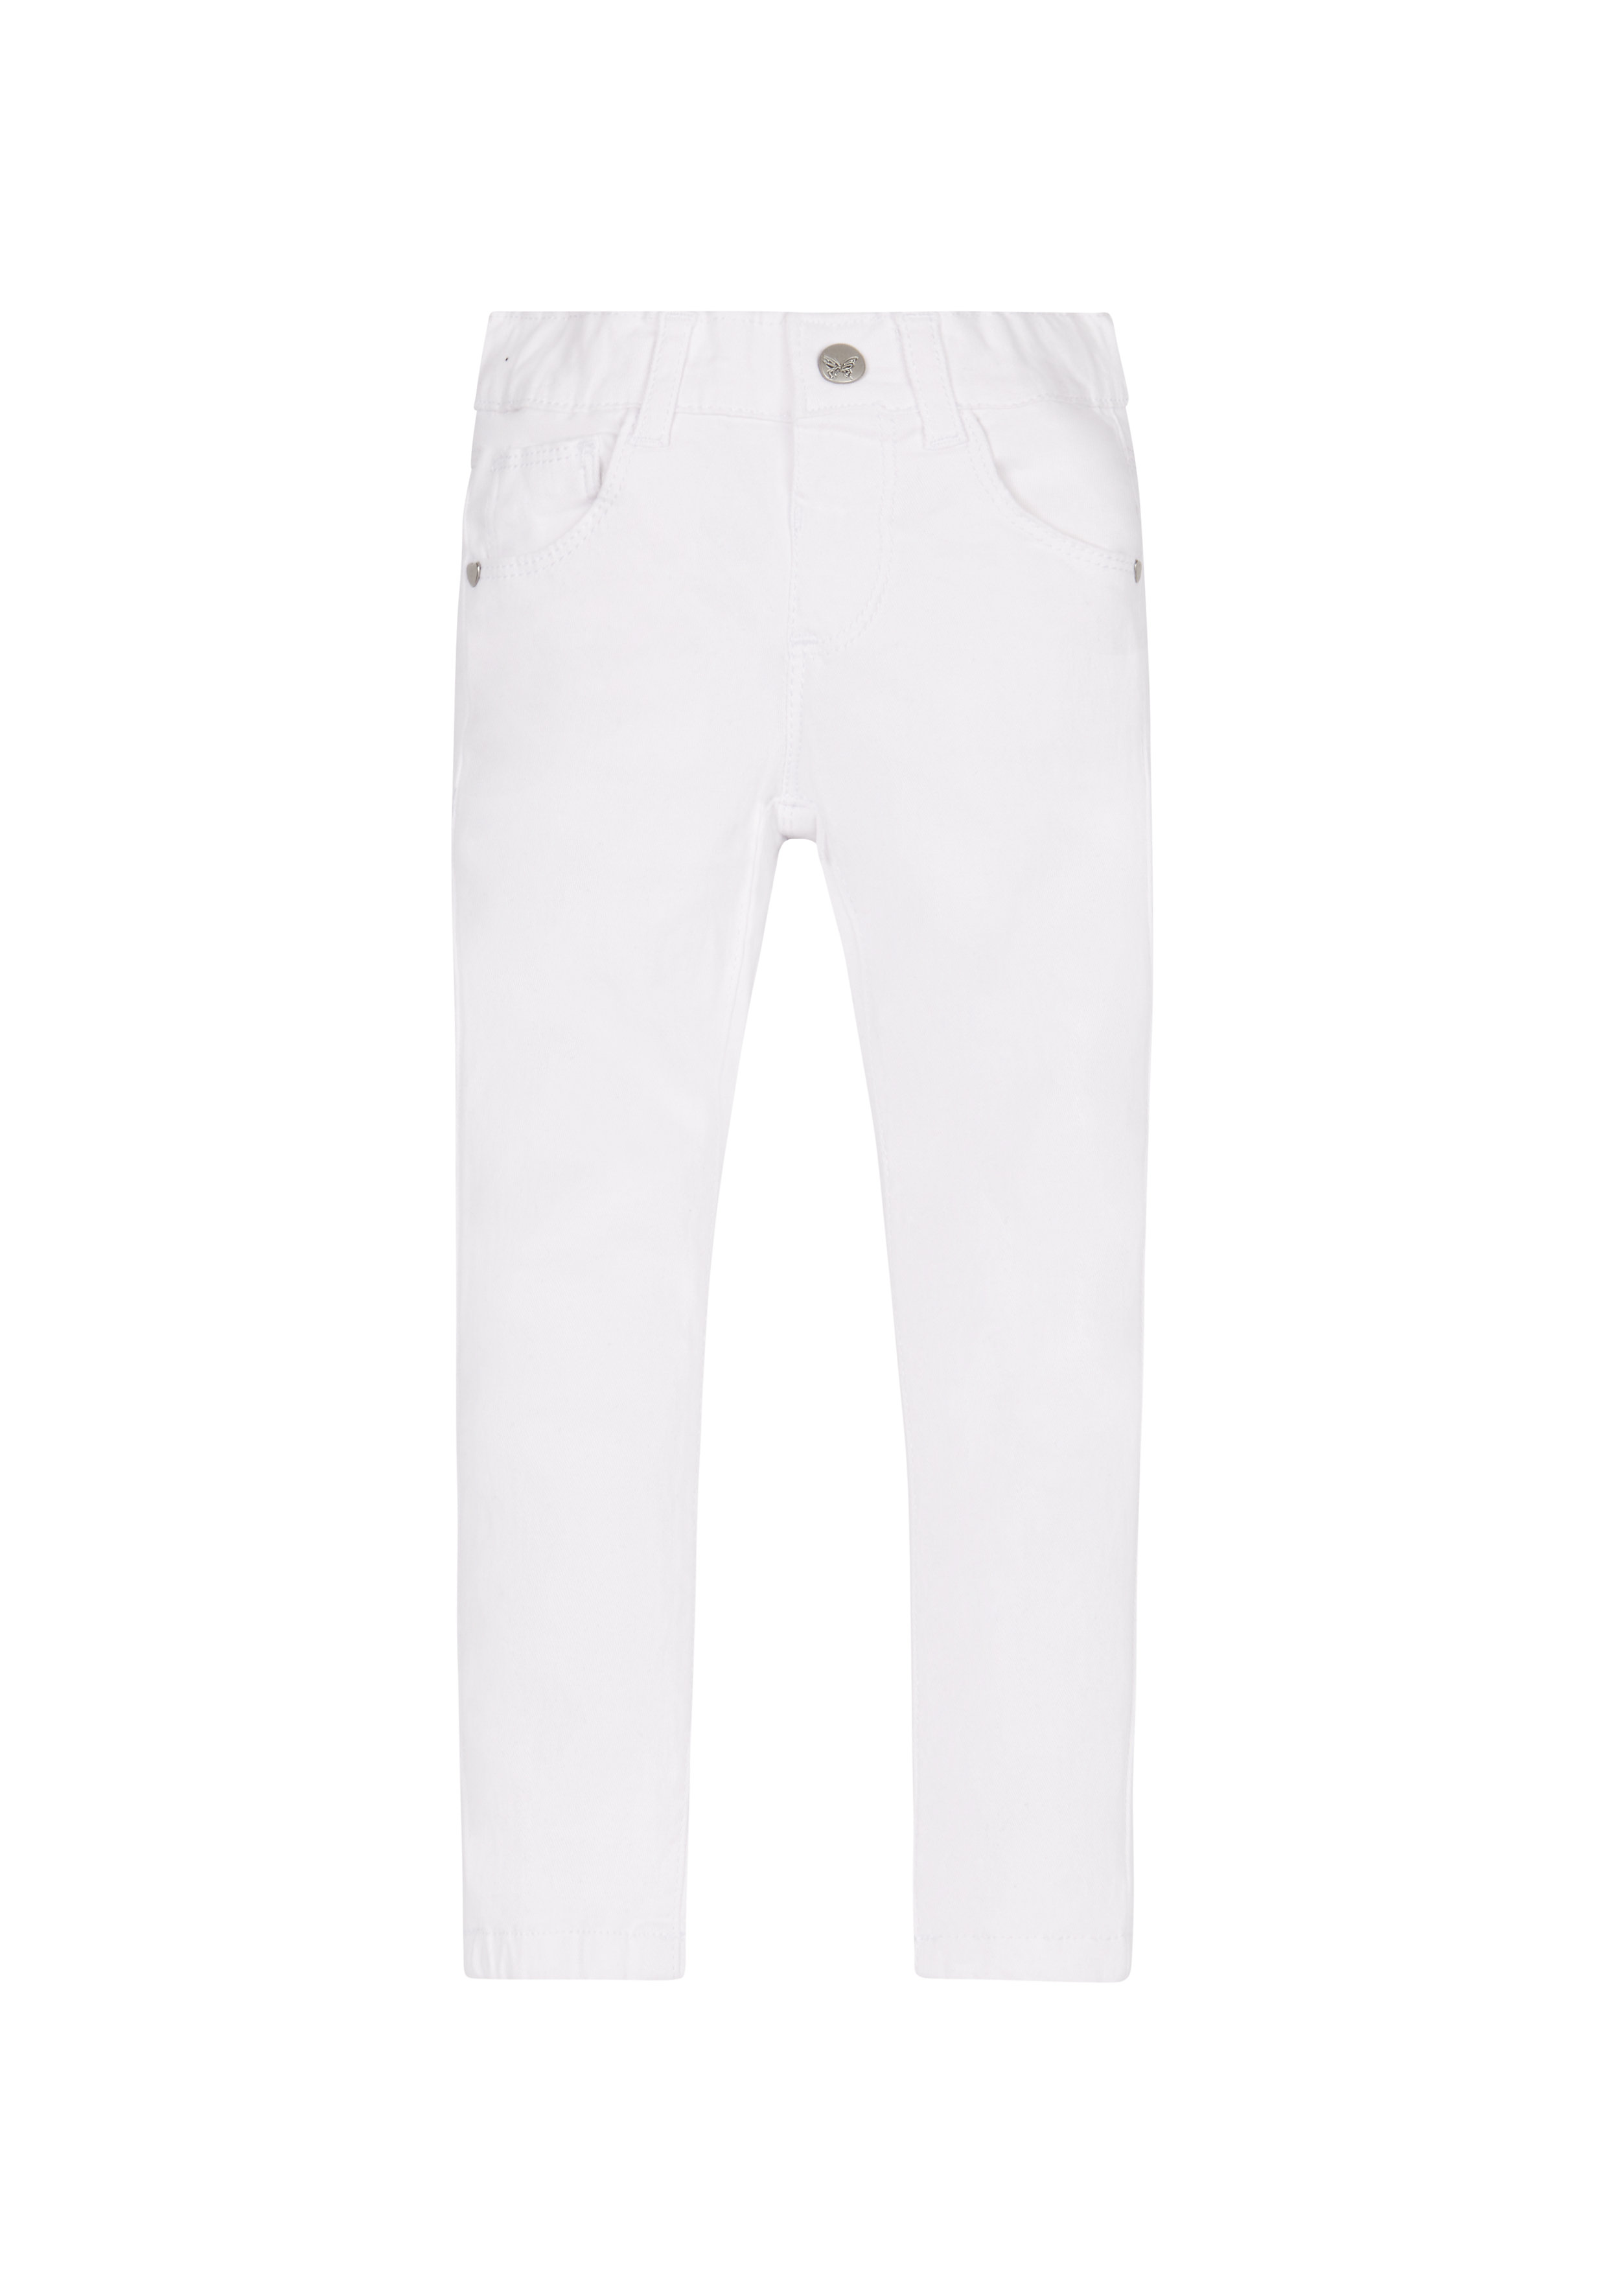 Mothercare | Girls  Jeans - White